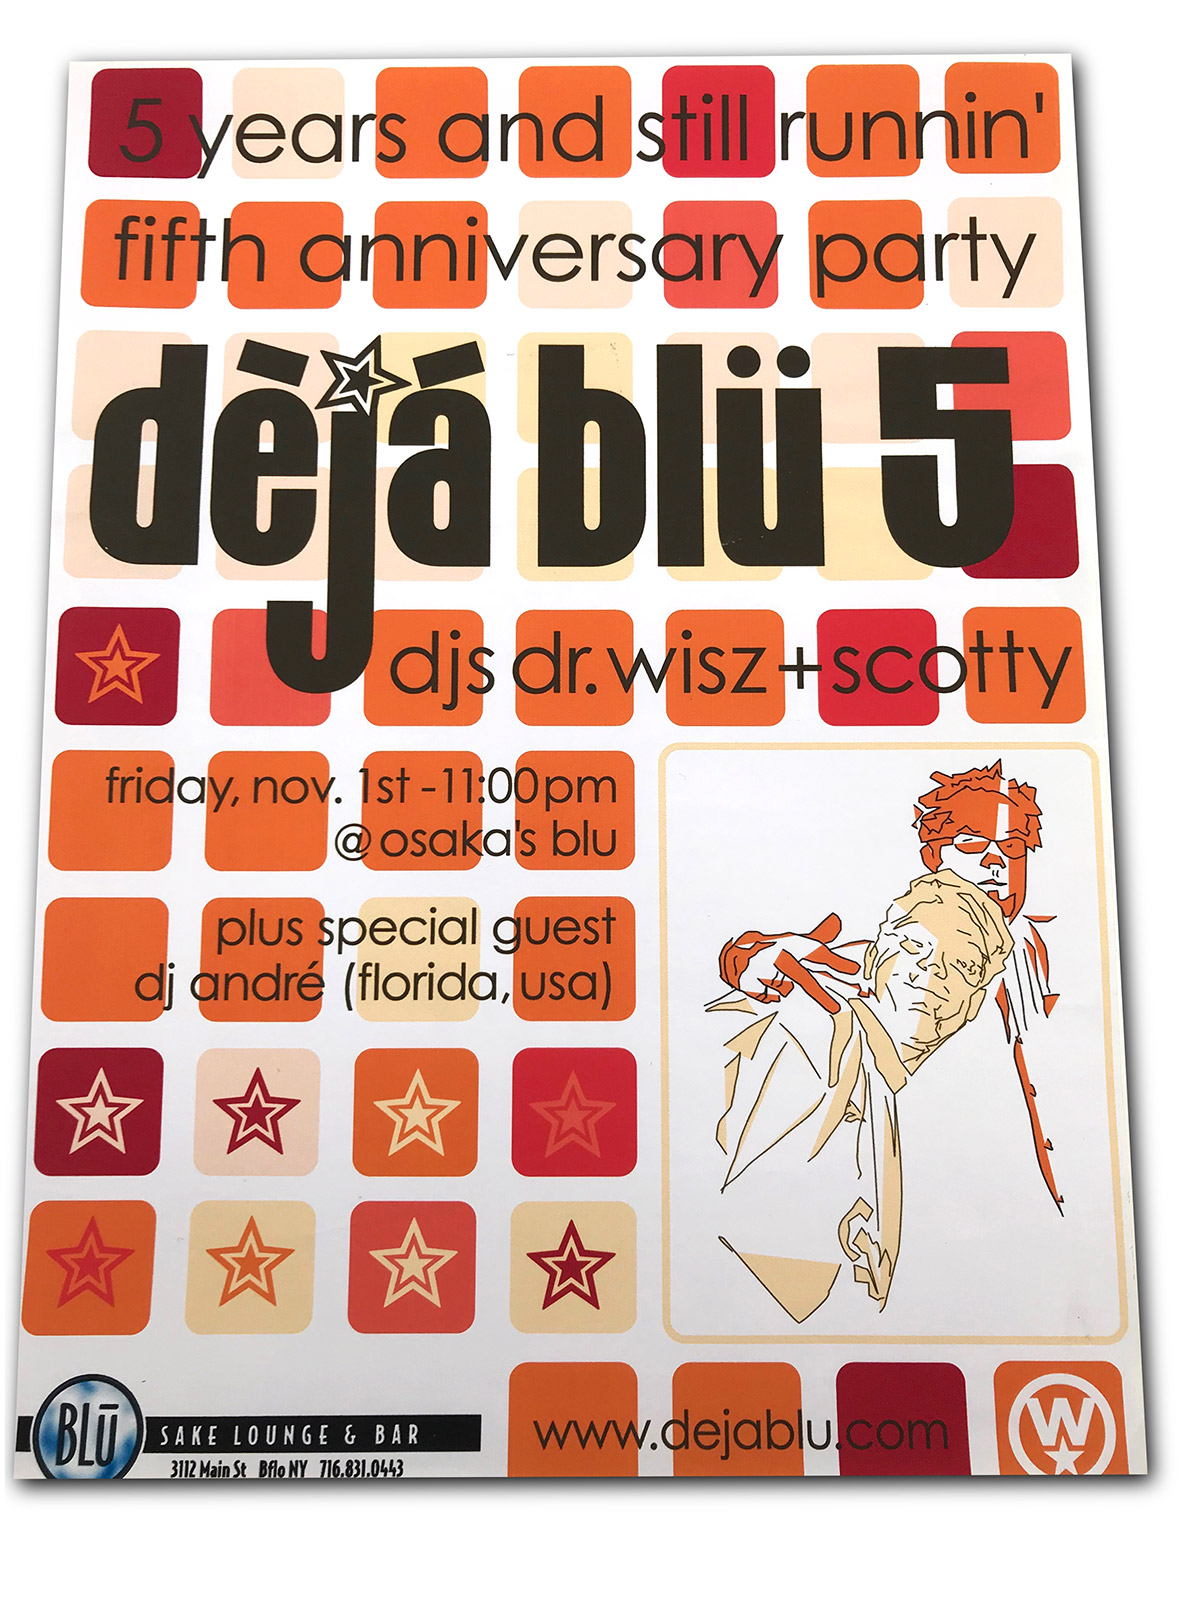 deja blu, djs, buffalo ny, poster design, graphics, mark wisz, dr. wisz